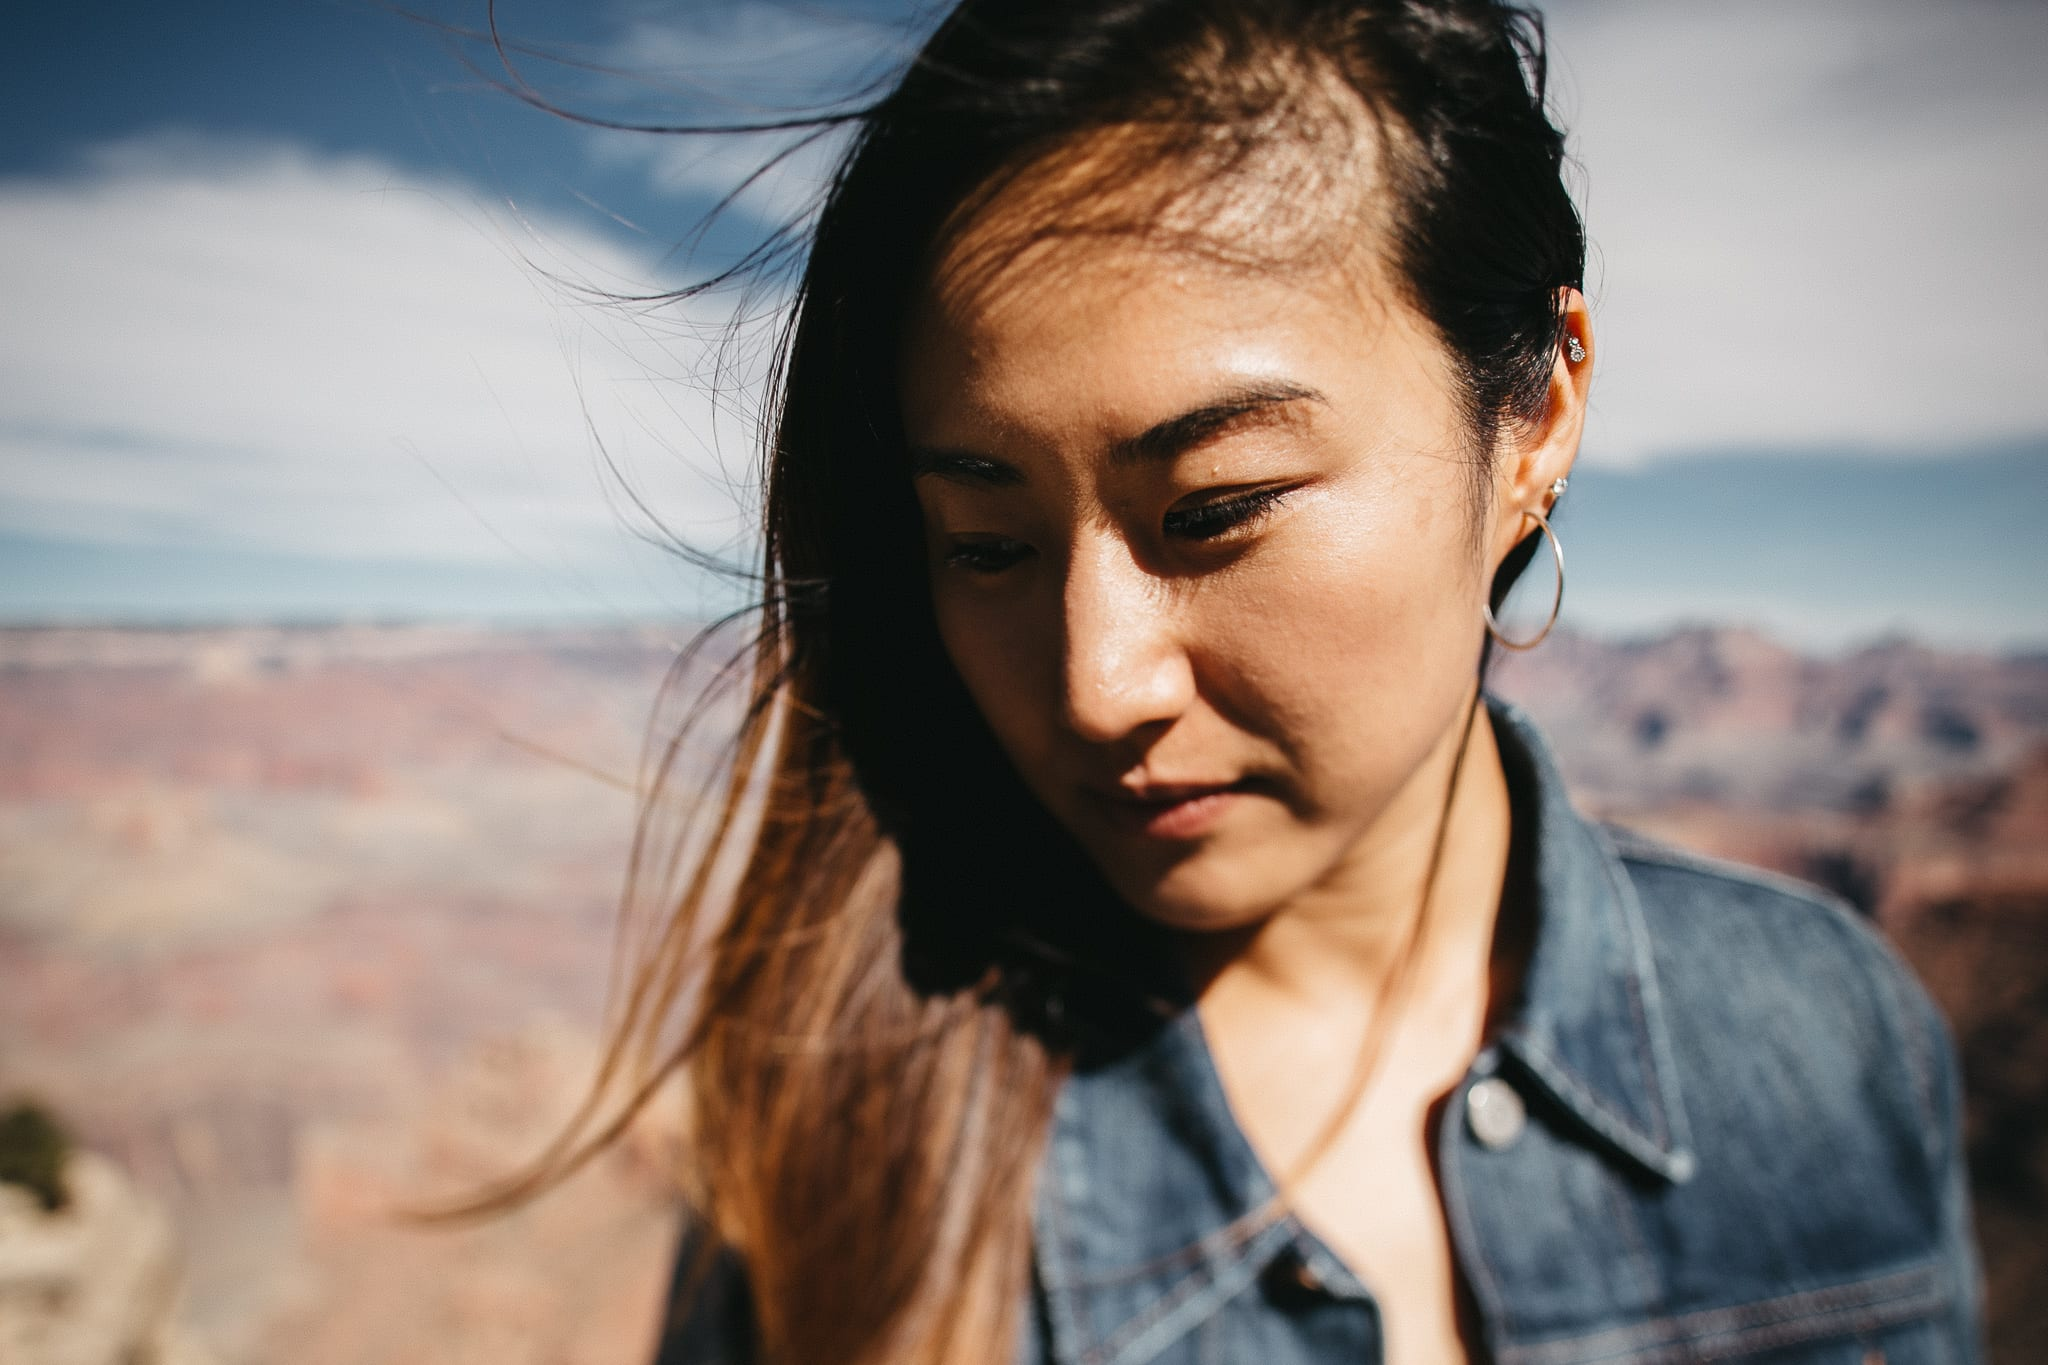 jc1-grand-canyon-arizona-lifestyle-portrait-photographer-8